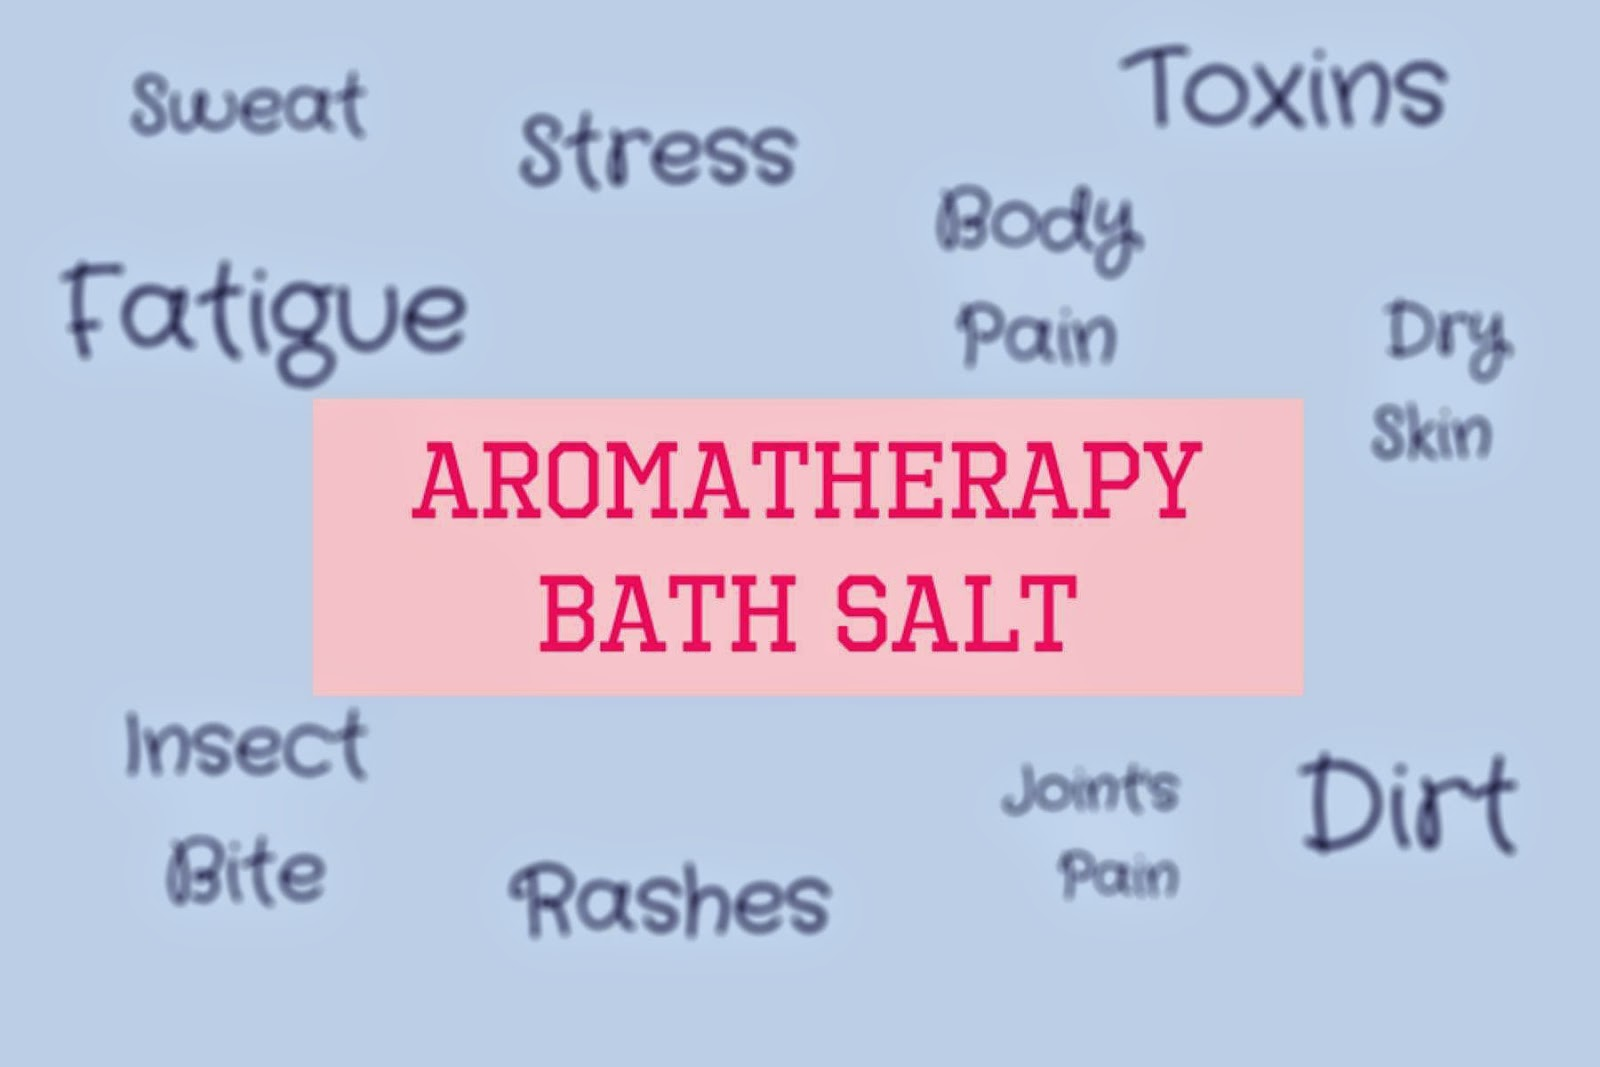 DIY bath Salt, bath salt, salt, bath, hot water bath, relaxing bath, stress , how to get rid if stress, how to get rid of dry skin, how to get rid of mosquito bites, how to get rid of itchiness, how to get rid of body pain, how to get rid of joint pain, DIY bath balm, DIY aromatherapy bath salt, DIY aromatherapy bath , aromatherapy , aromatherapy bath salt, aromatherapy uses, aromatherapy effects, does aromatherapy work, home made bath balm, home made bath salt, home made aromatherapy bath salt, home made aromatherapy bath , aromatherapy at home, how to use bath salt, how to use bath balm, detoxification, how to detox, how to detox at home, how to get rid of sweat ,how  to get rid of body Oder, how to get rid of tension